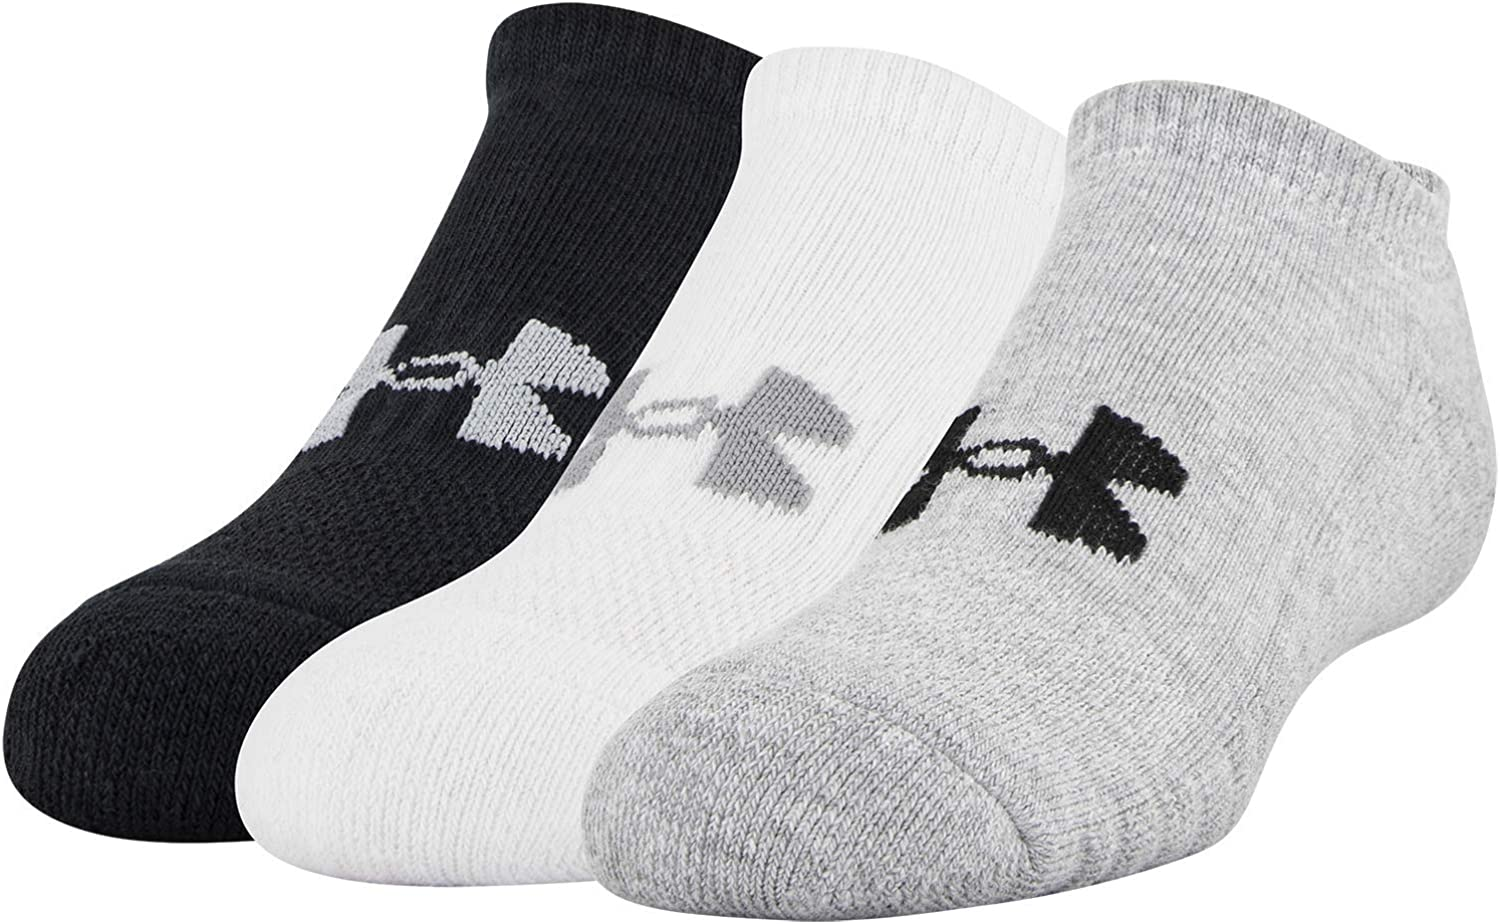 Under Armour Youth Training Cotton No Show Socks, 3-Pairs